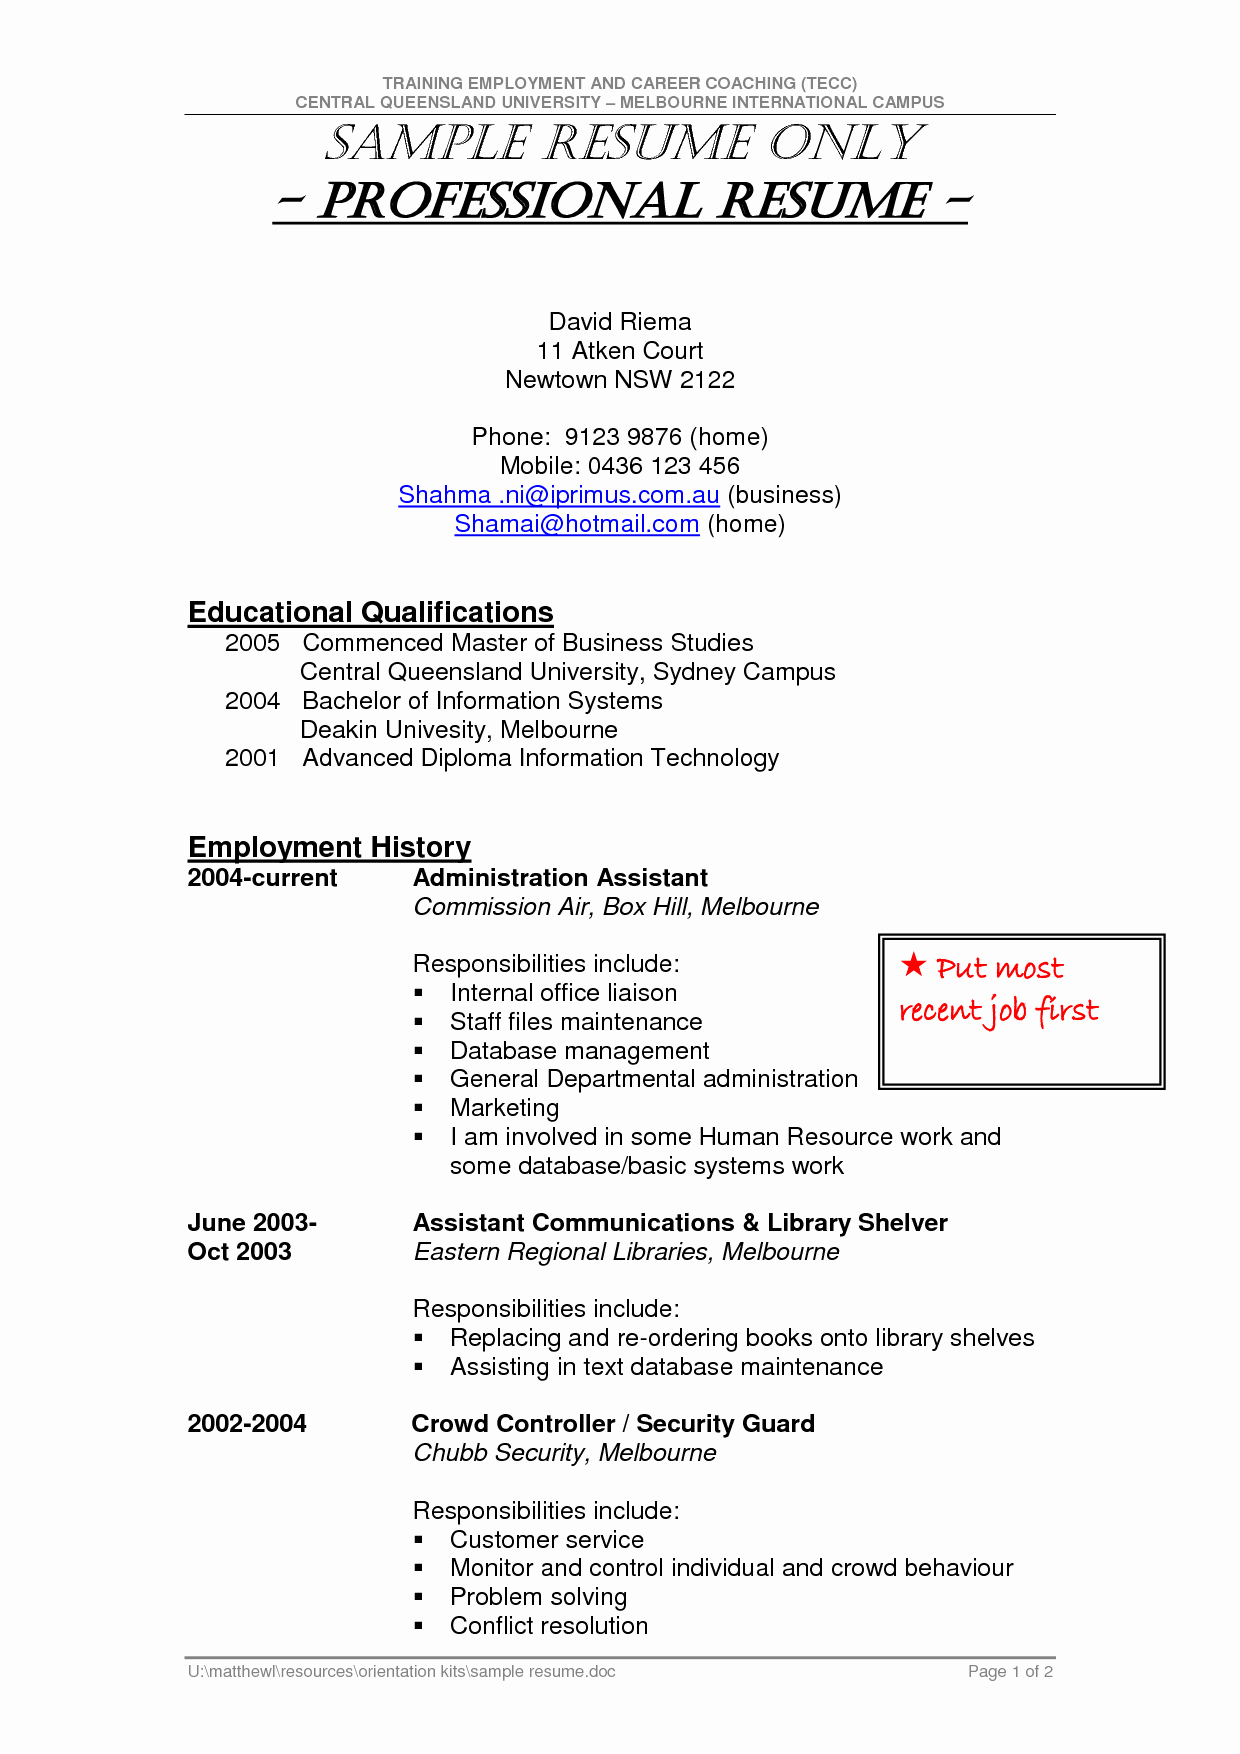 Resume Cover Letter Entry Level Beautiful Entry Level Security Ficer Cover Letter Sample